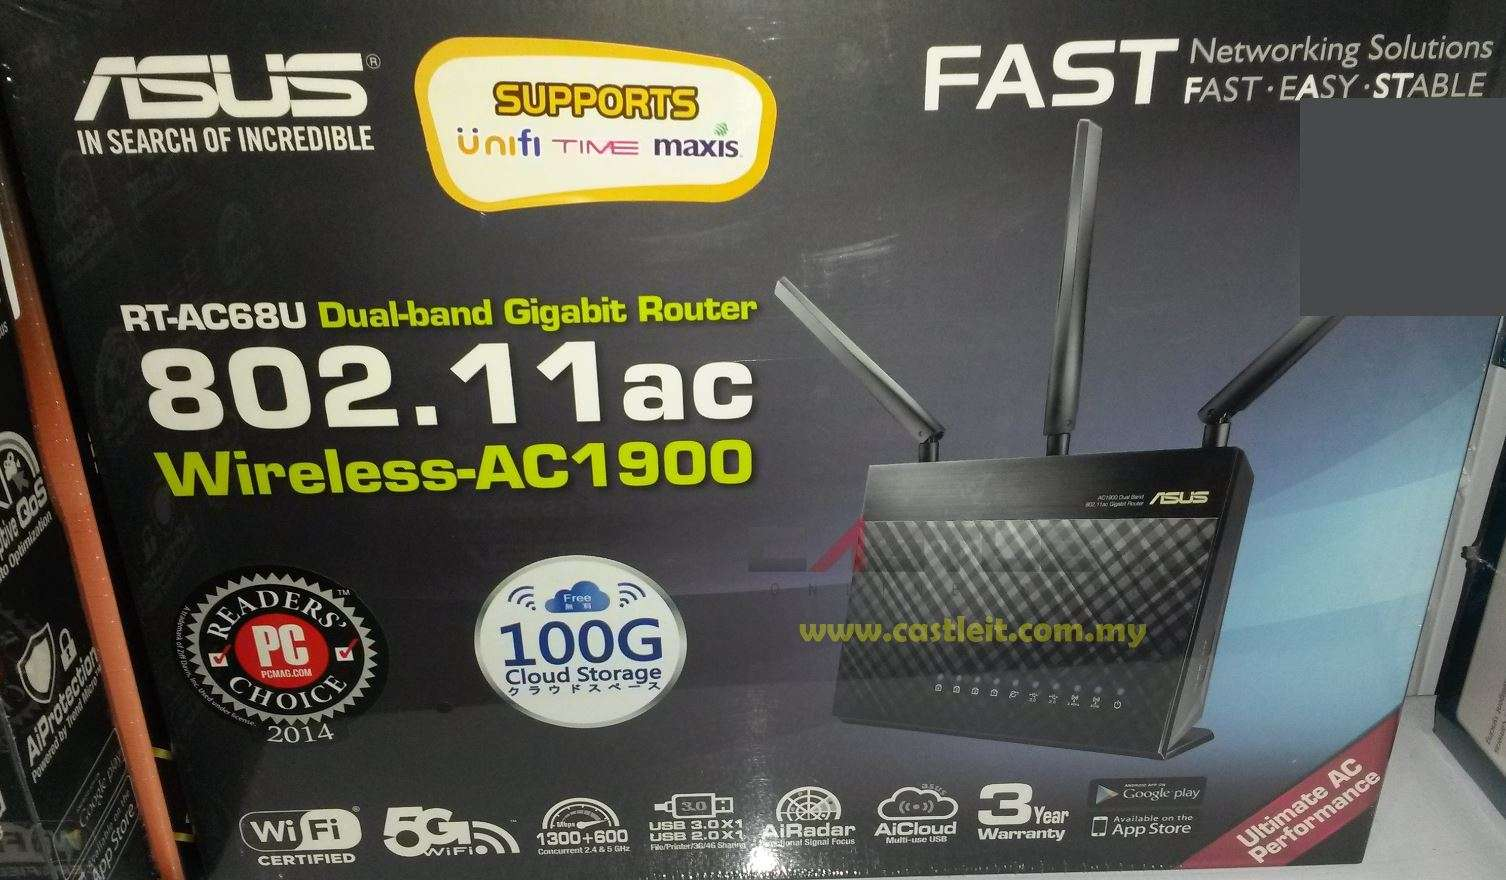 ASUS Router Gigabit WiFi N600MBPS DUAL BAND AC1900 (RT-AC68U)